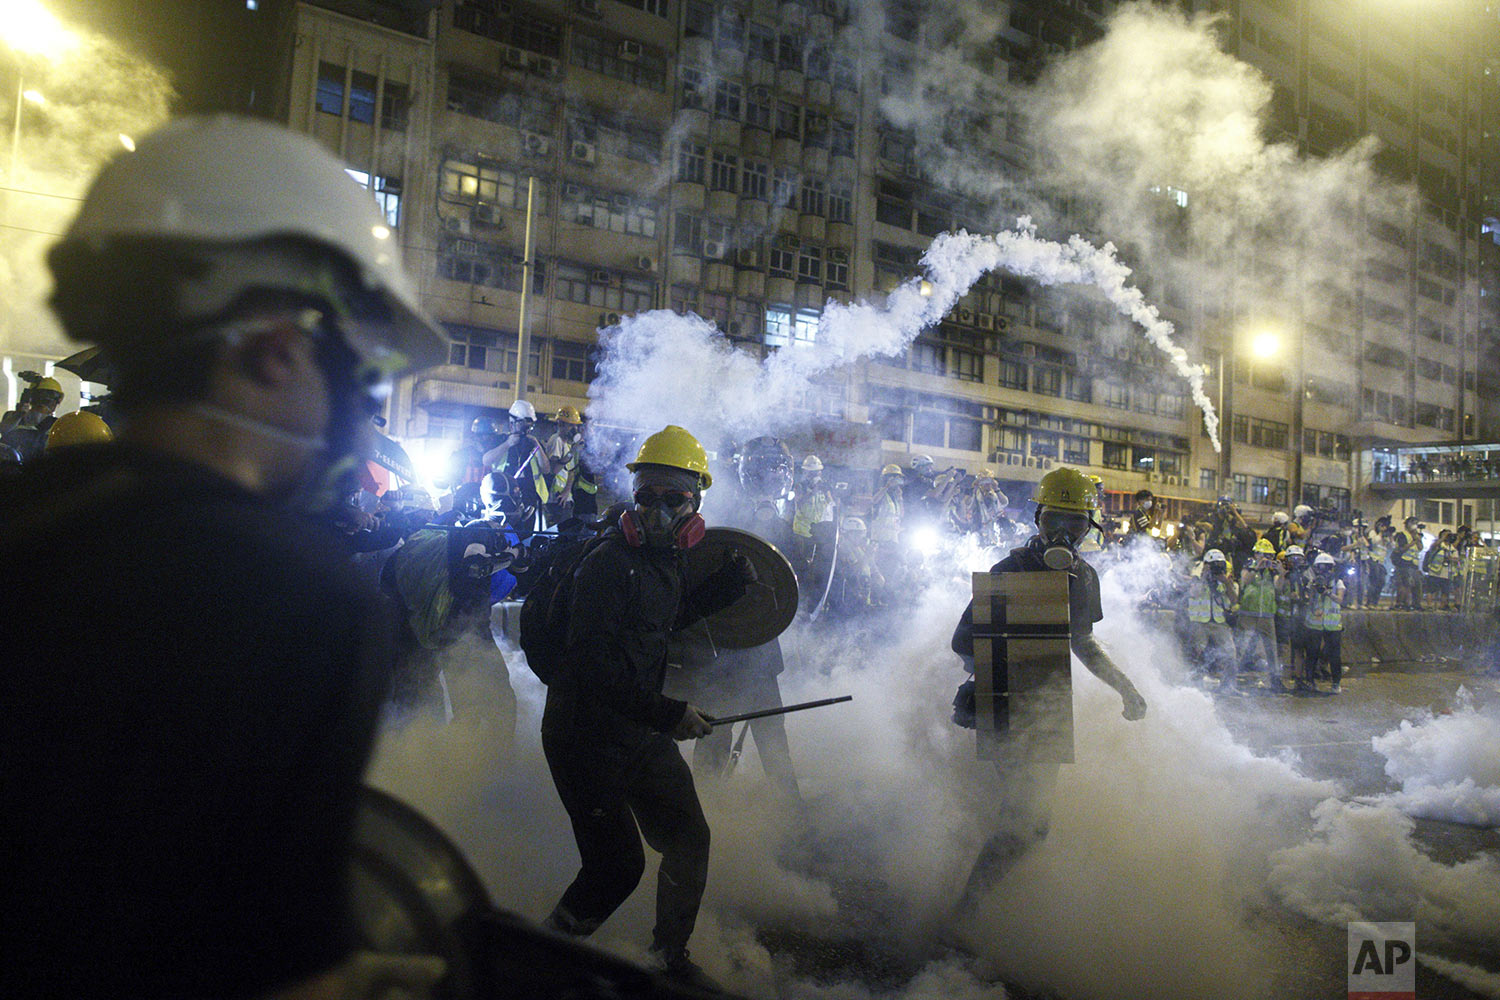 Protesters react to tear gas during a confrontation with riot police in Hong Kong, July 21, 2019.  (Eric Tsang/HK01 via AP)